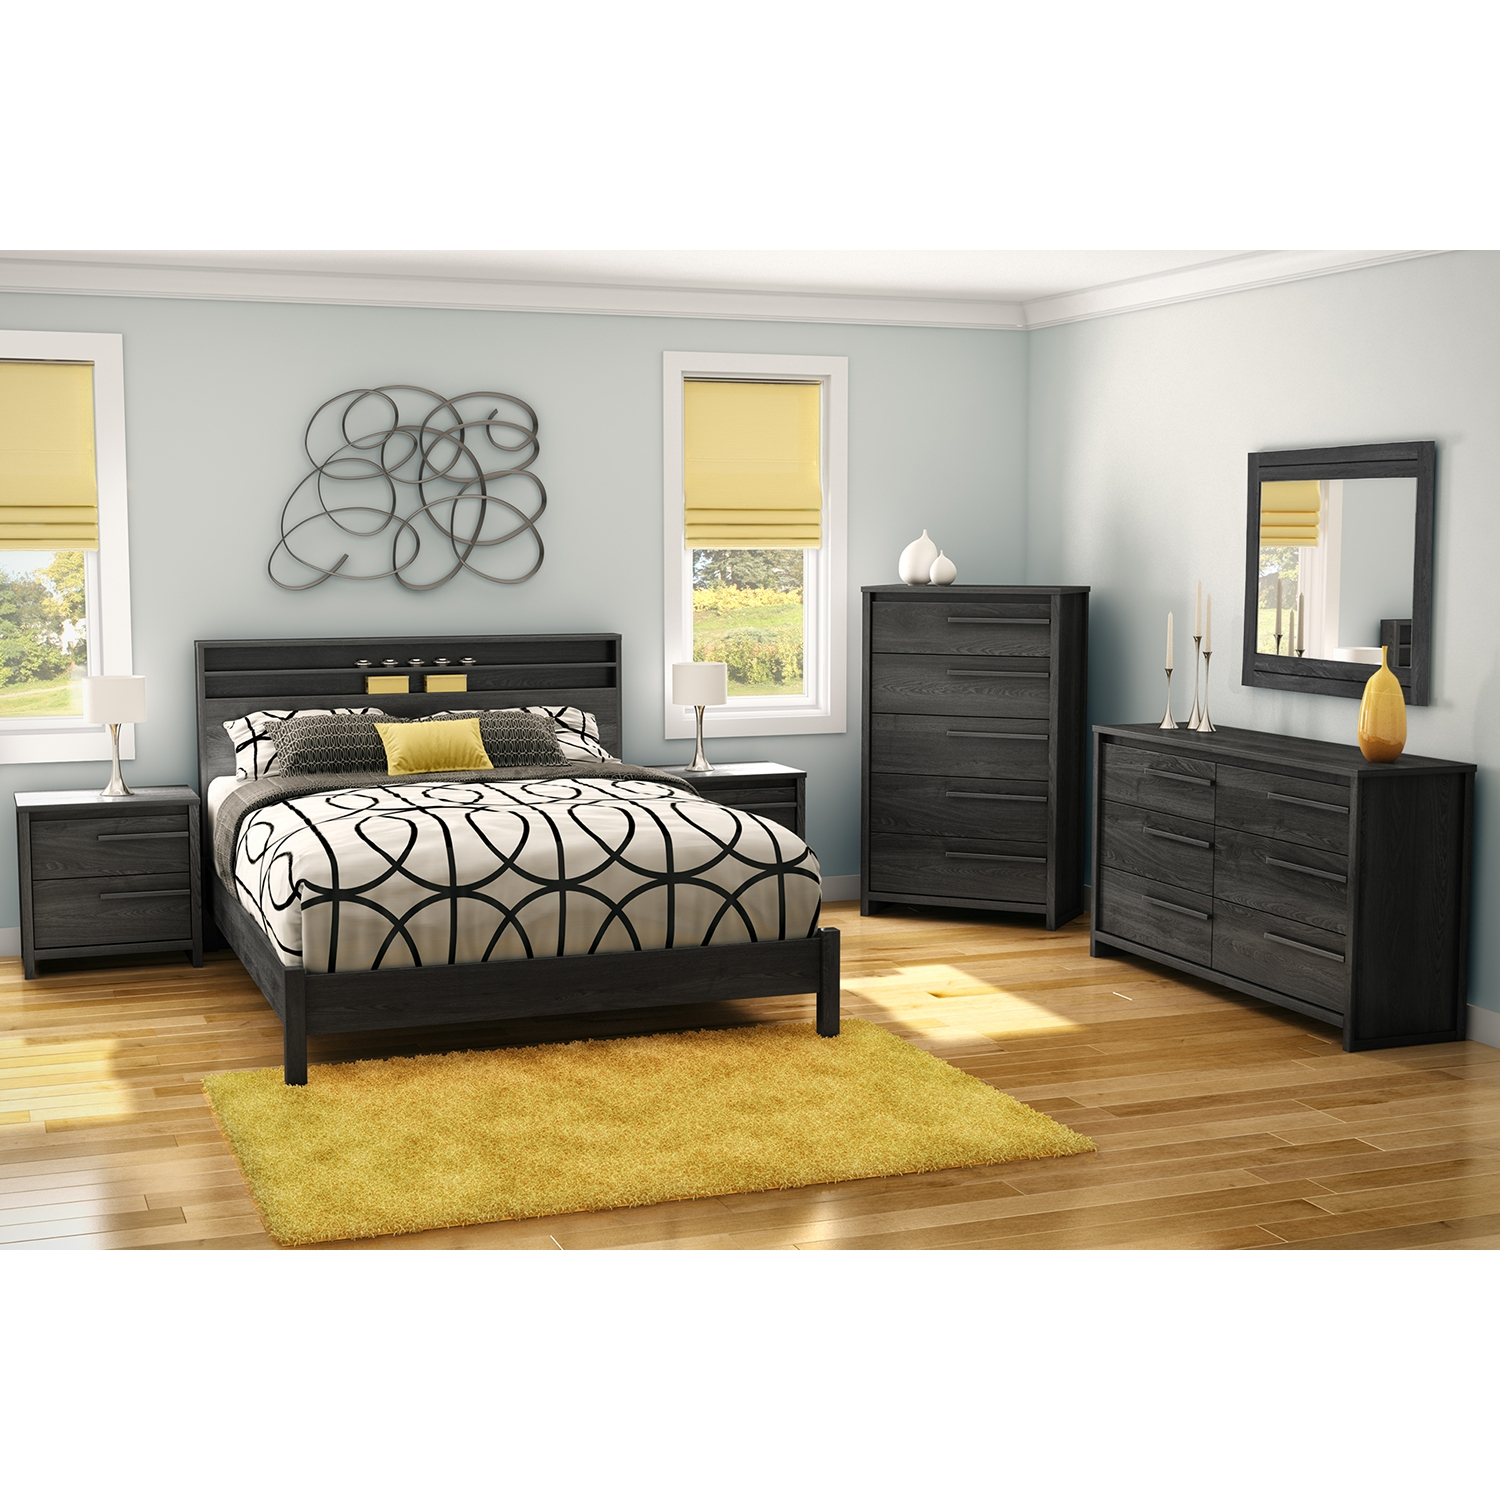 Tao 5 Drawers Chest - Gray Oak - SS-9025035